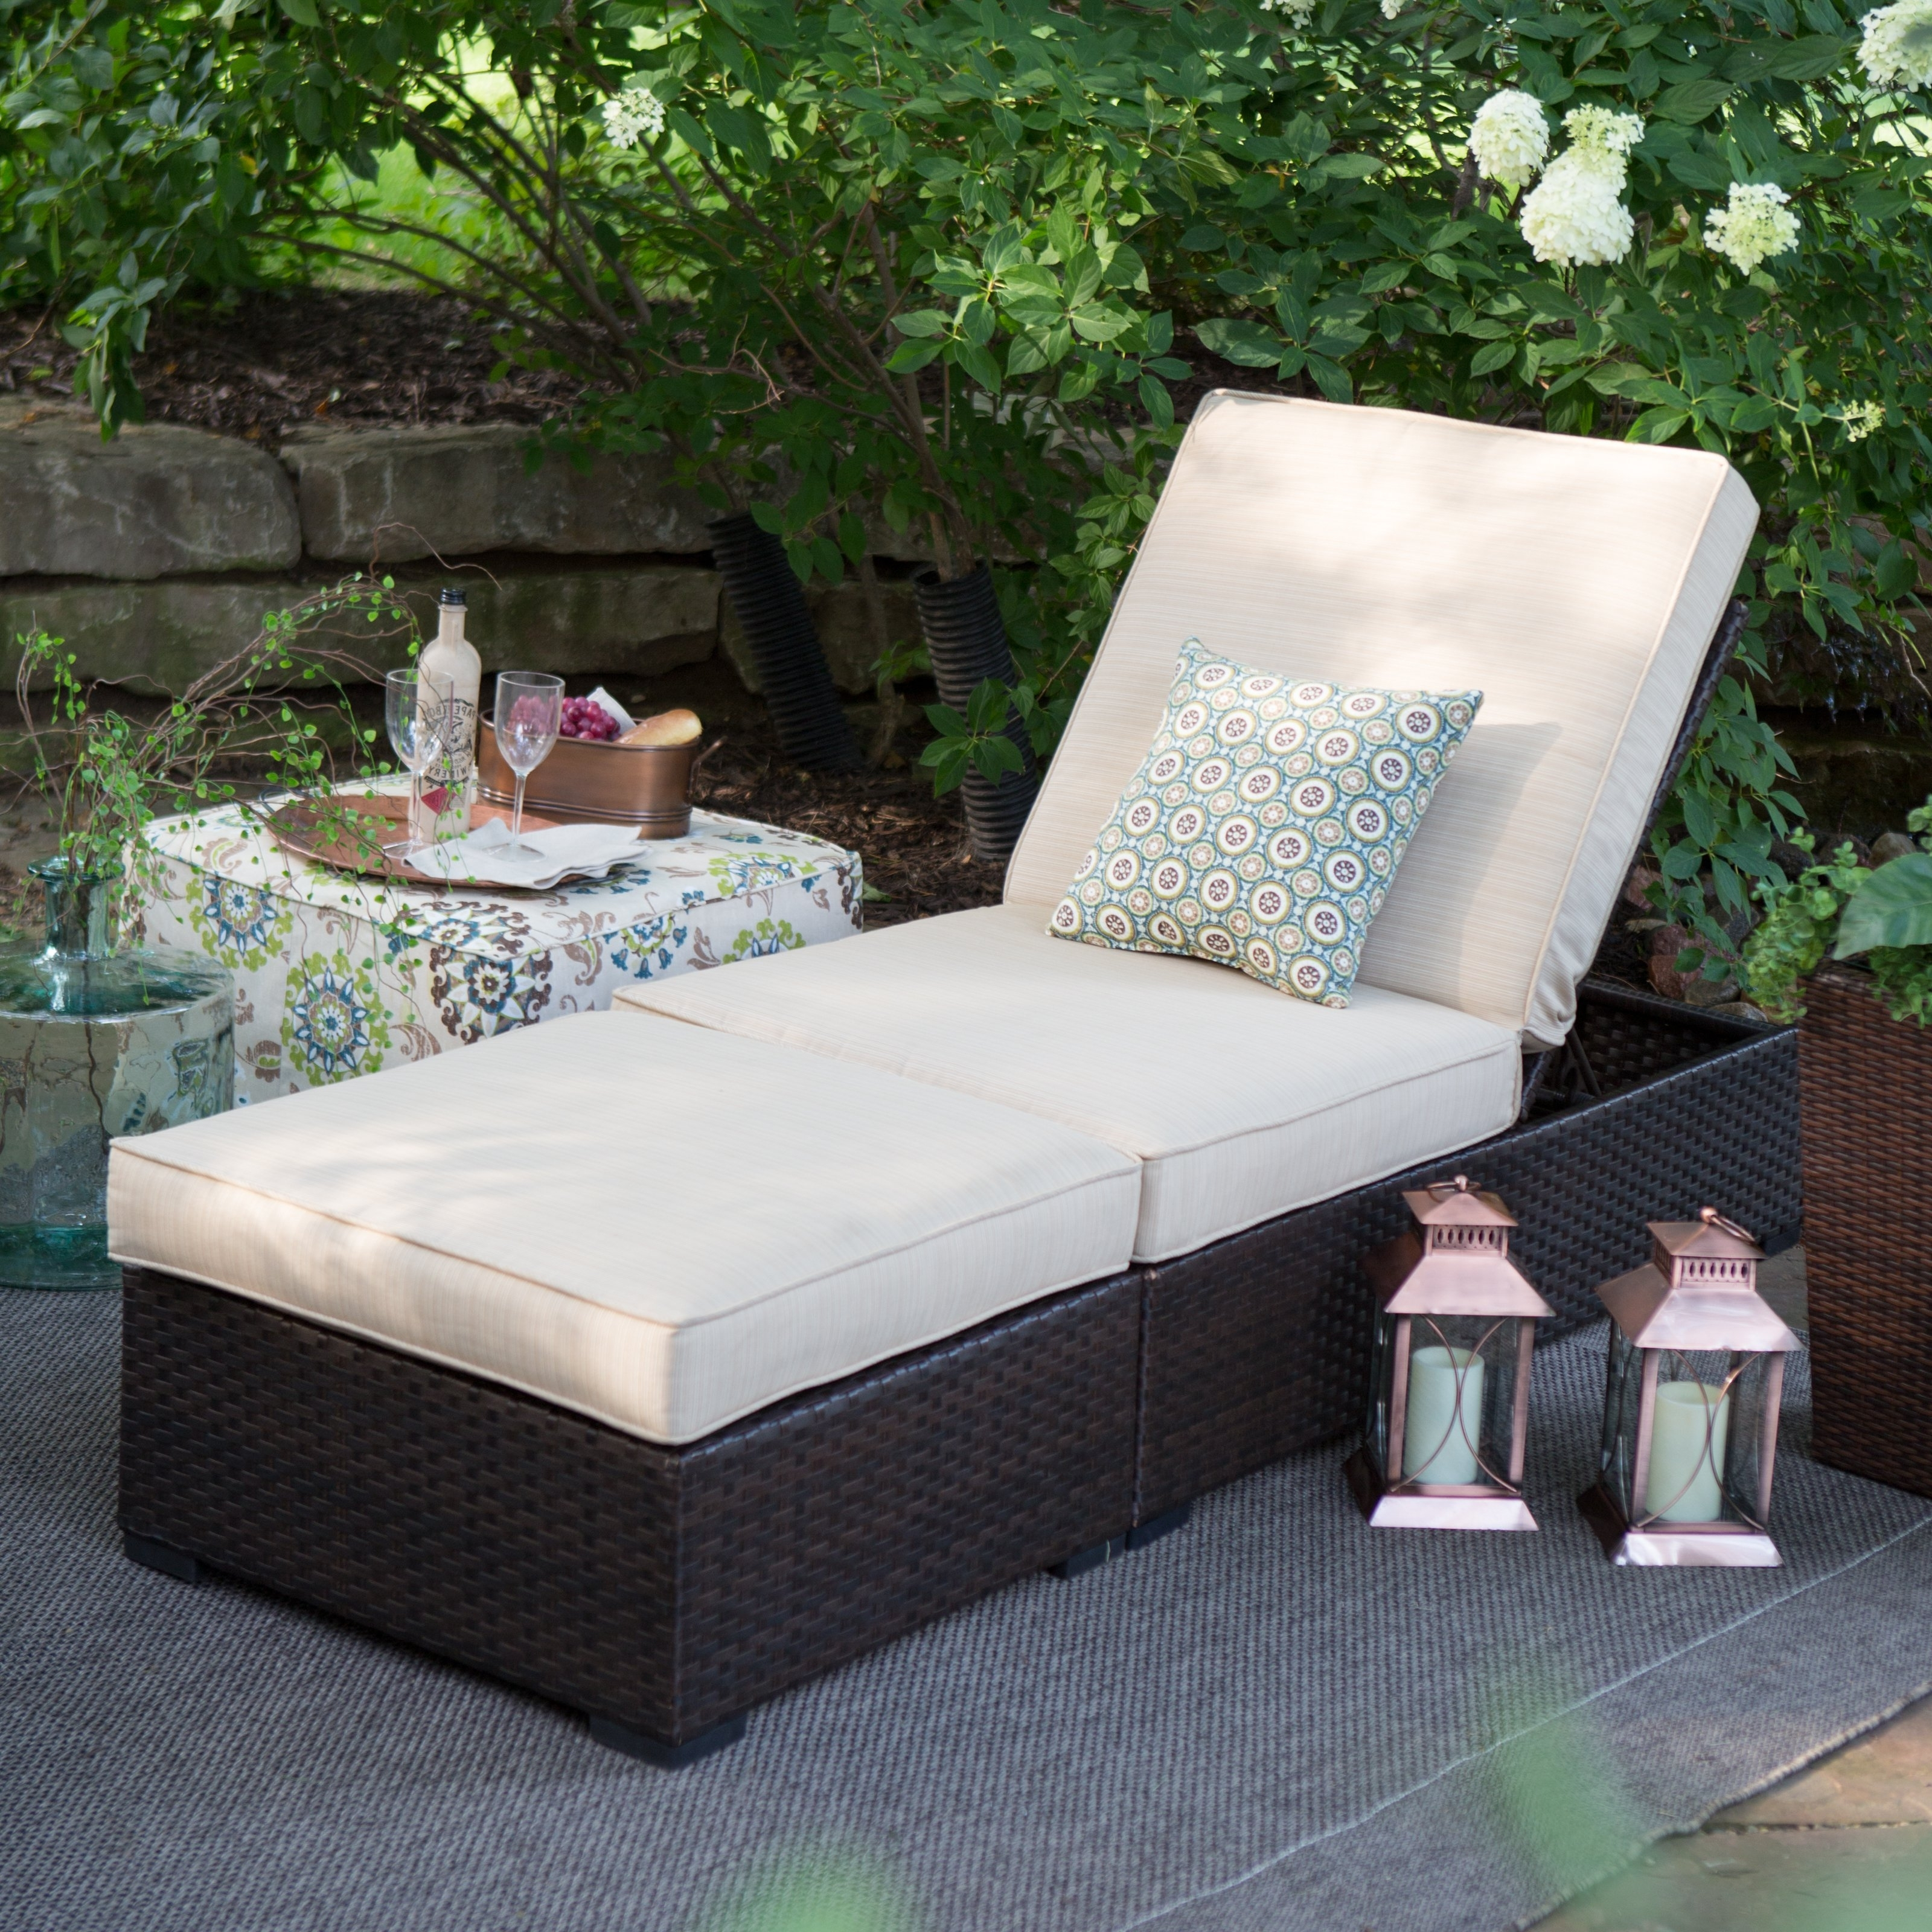 Current Belham Living Marcella Wide Wicker Chaise Lounge With Ottoman Inside Wide Chaise Lounges (View 9 of 15)